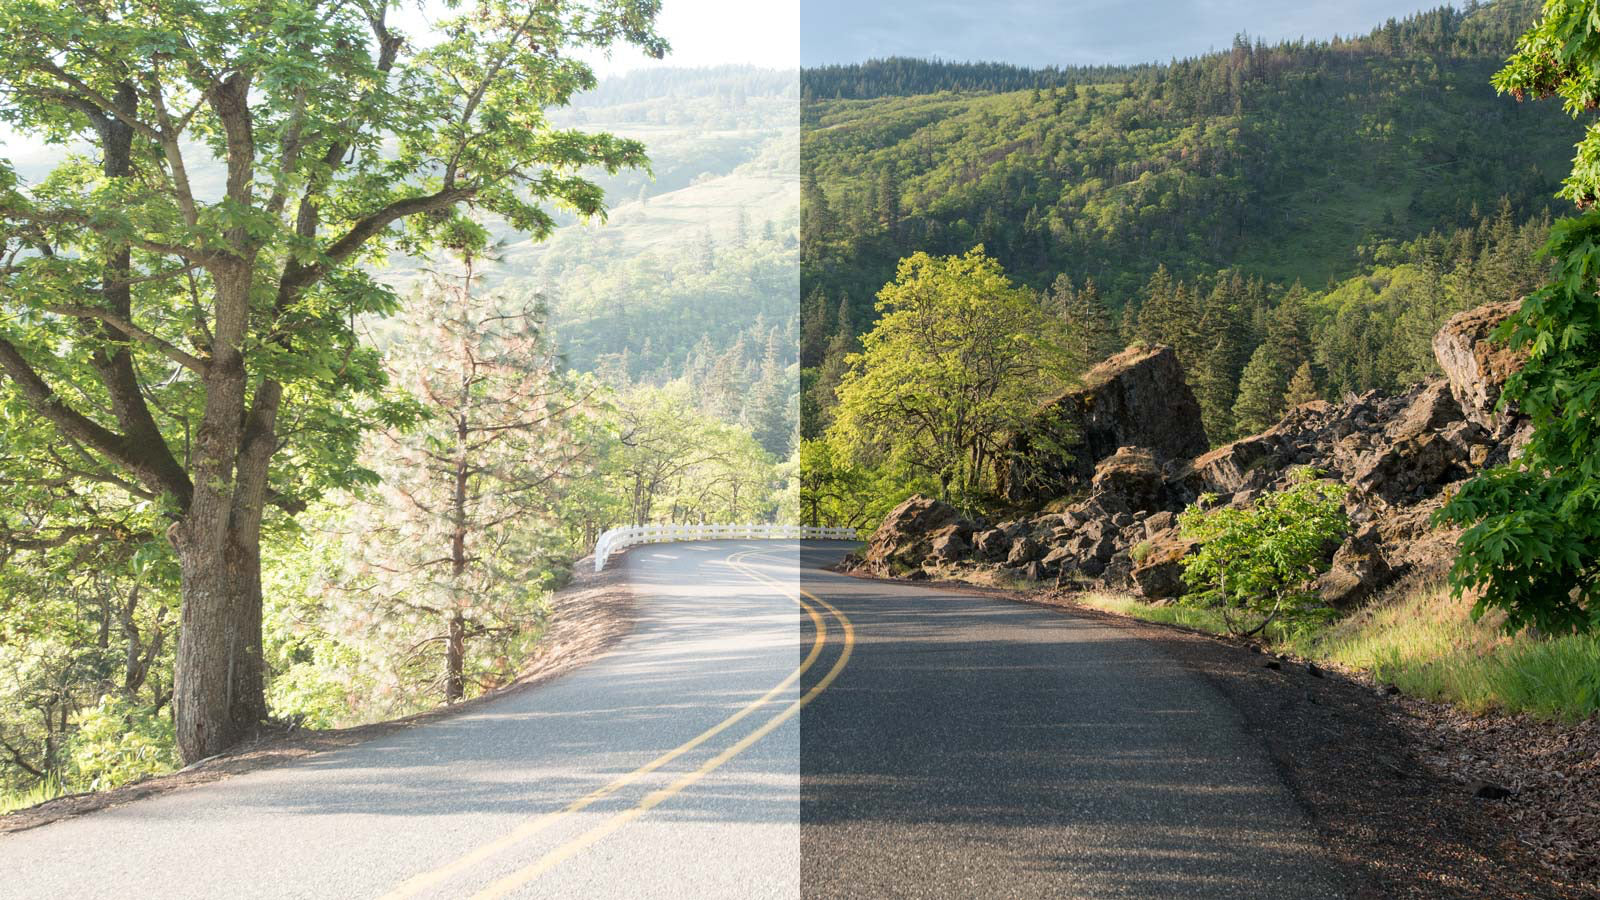 View of the road seen with and without the Stealth Black lens